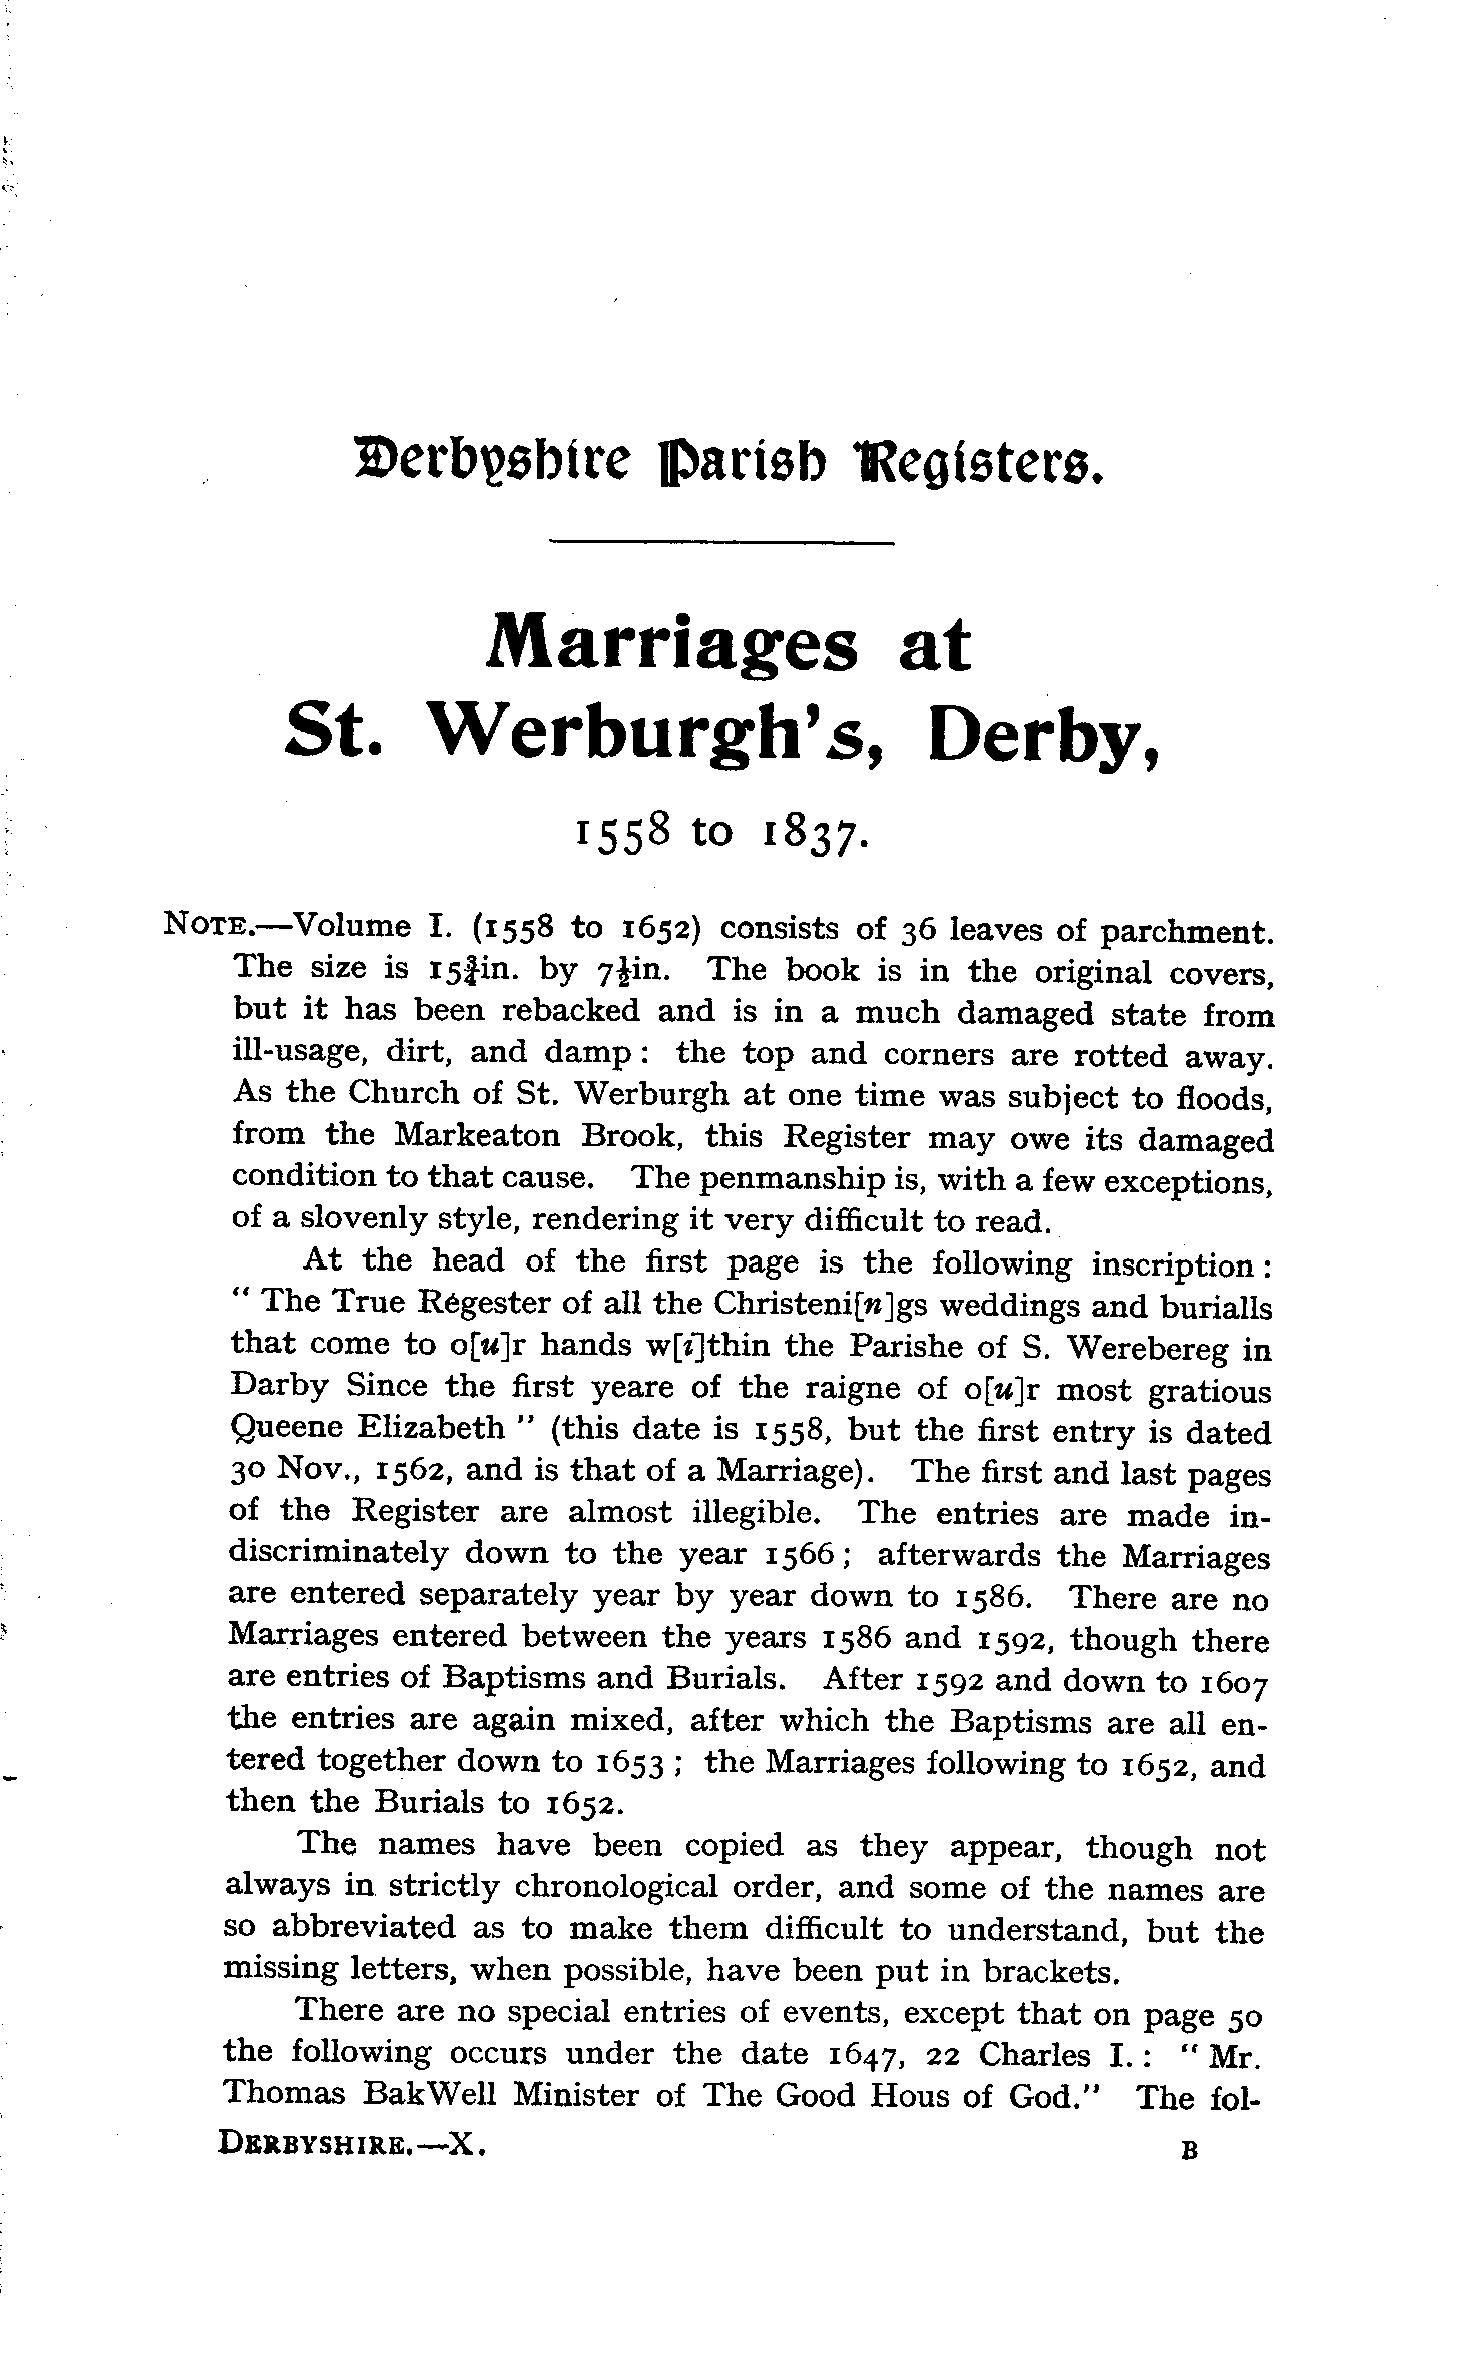 Derbyshire Parish Registers - Marriages volume 10 page 1 - click to open larger version in a new window